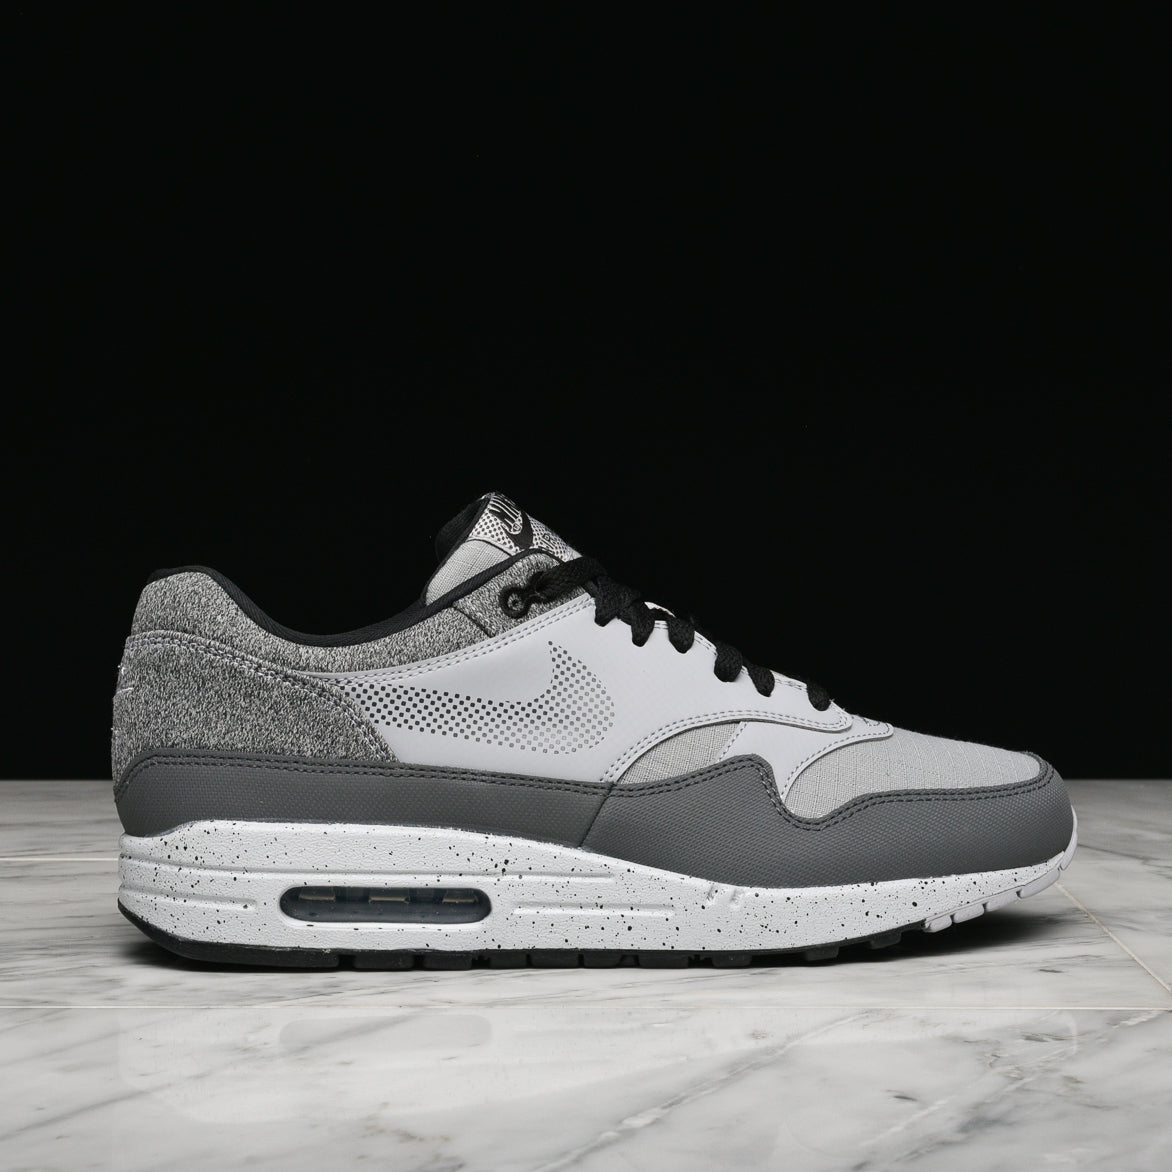 new concept cde02 52d23 AIR MAX 1 SE - WOLF GREY   ANTHRACITE   lapstoneandhammer.com